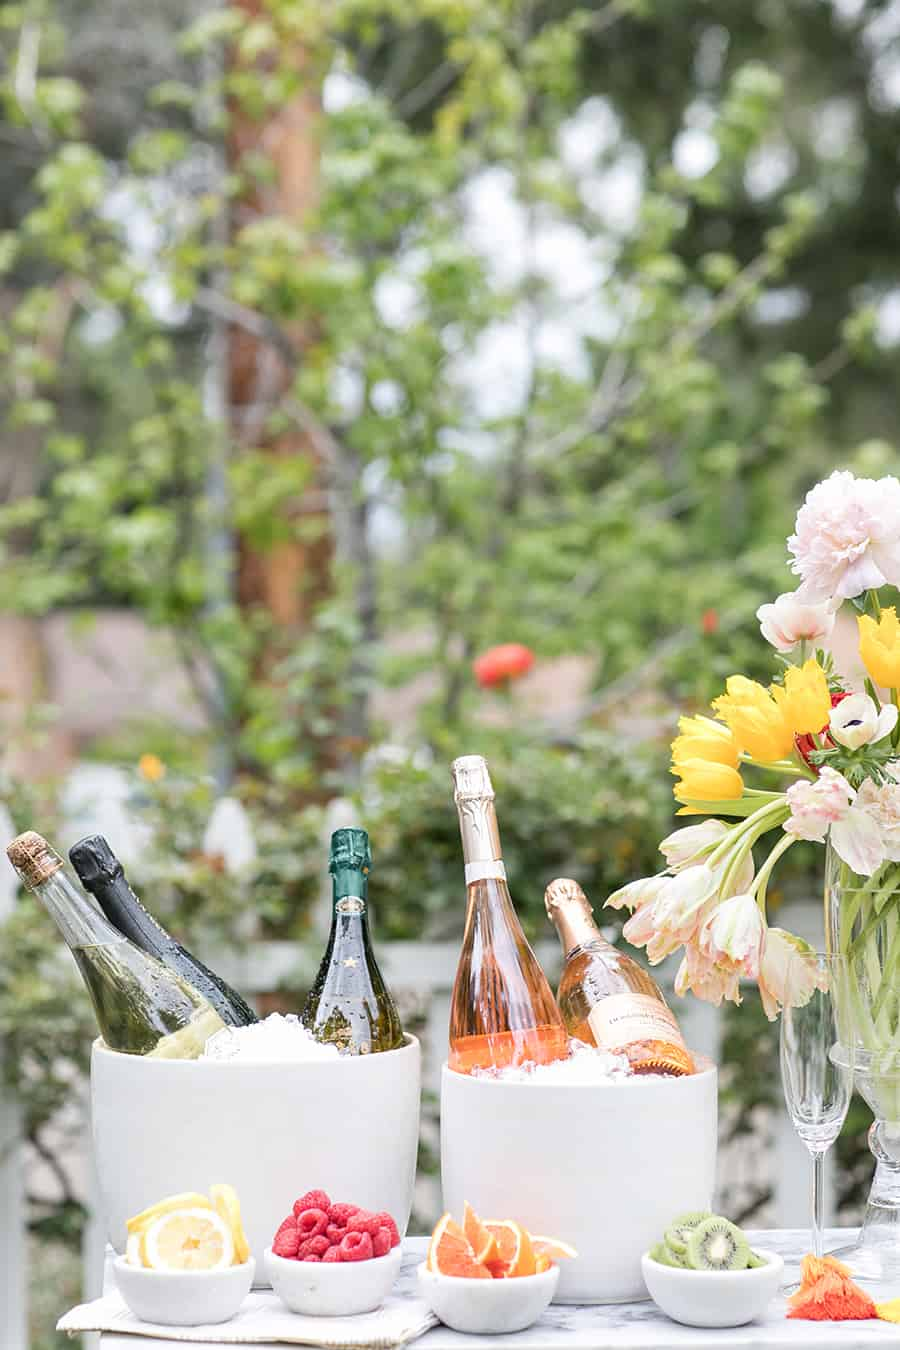 Bottles of Champagne over ice with bowls of fruit.